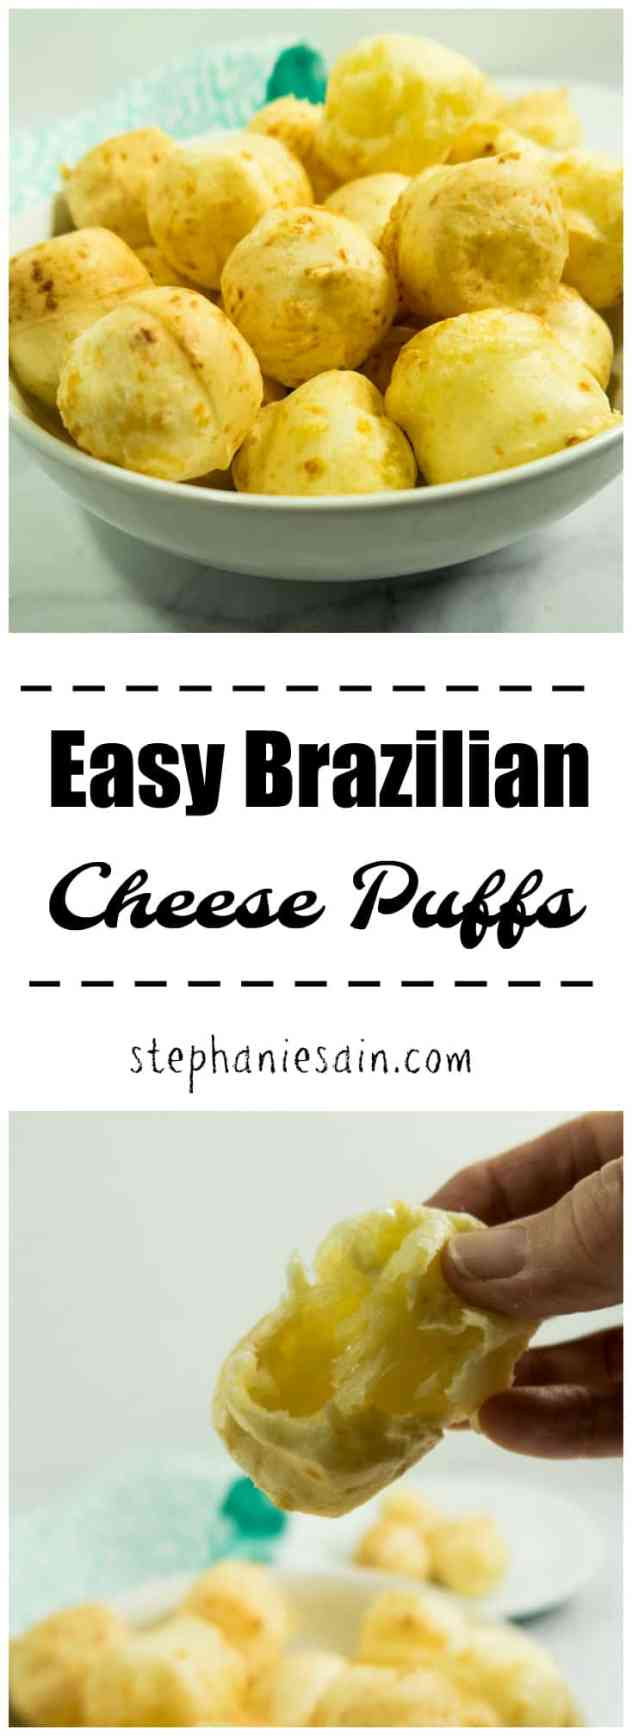 Easy Brazilian Cheese Puffs require only five ingredients and are light, fluffy and tasty. Great as a snack, appetizer or perfect side with your meal. Gluten free & Vegetarian.